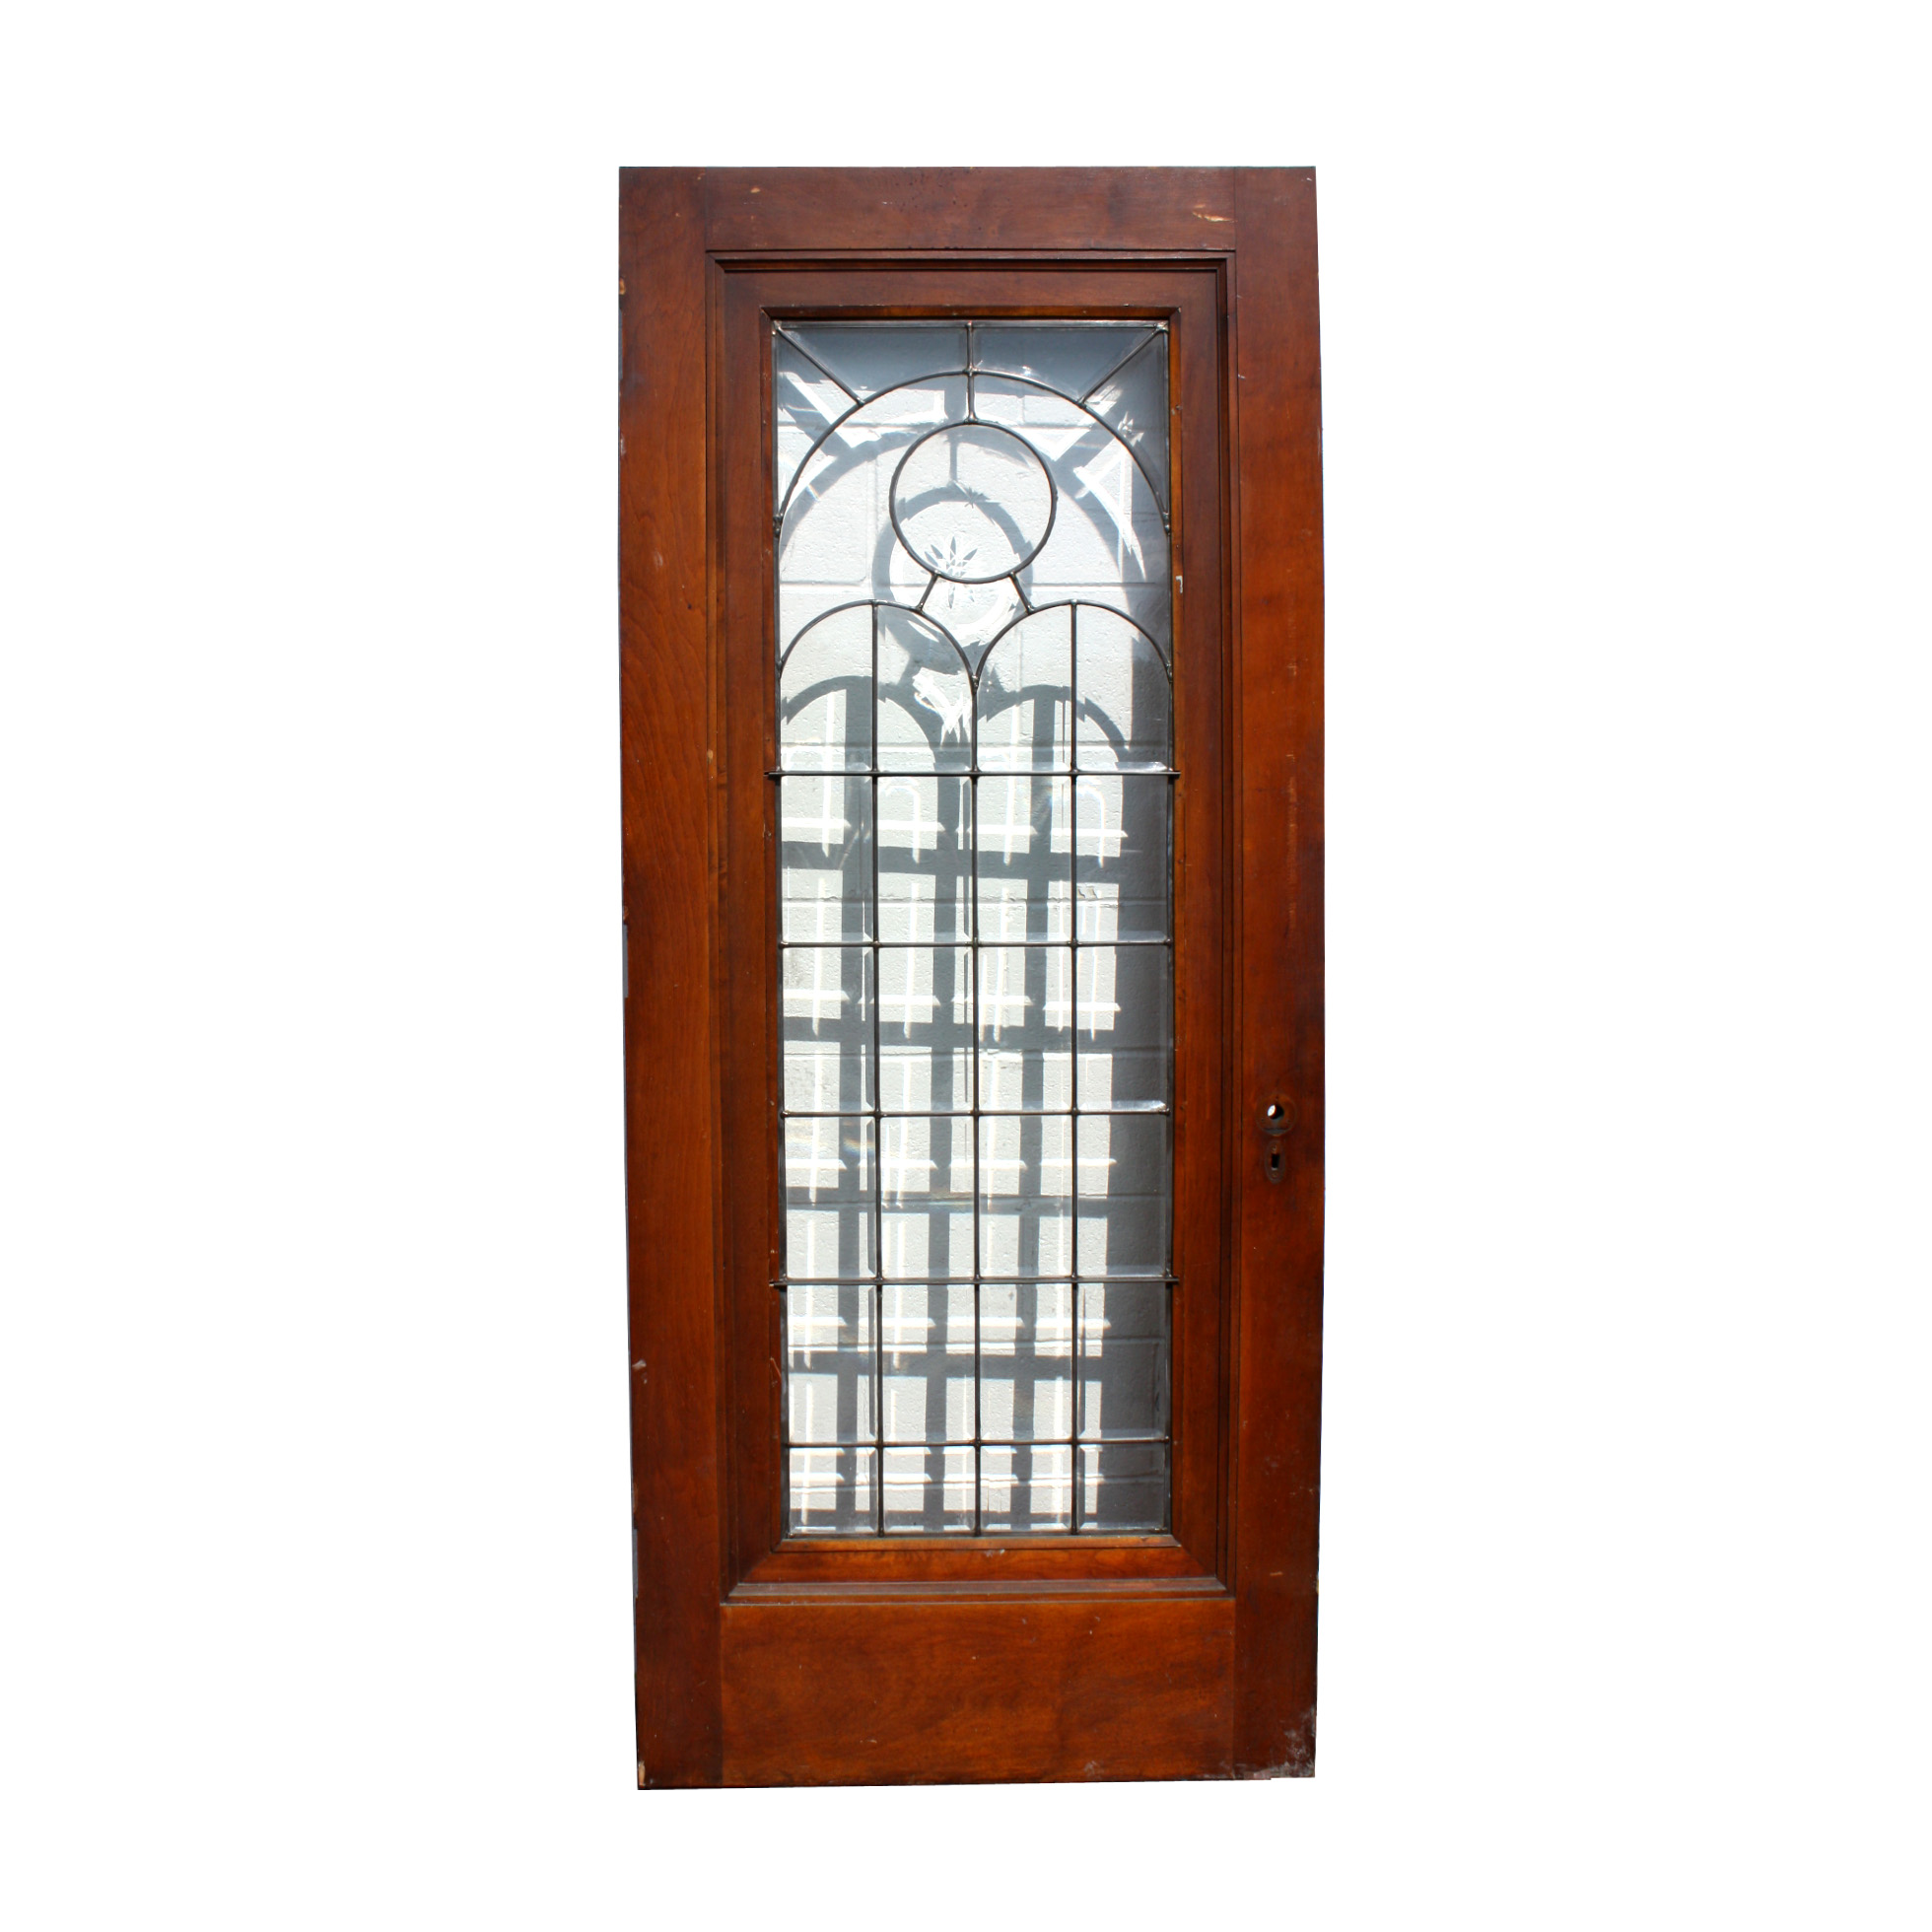 Sensational Beautiful 34 Salvaged Exterior Door With Beveled Amp Leaded Glass Hand Cut Star Ned167 For Sale Door Handles Collection Olytizonderlifede